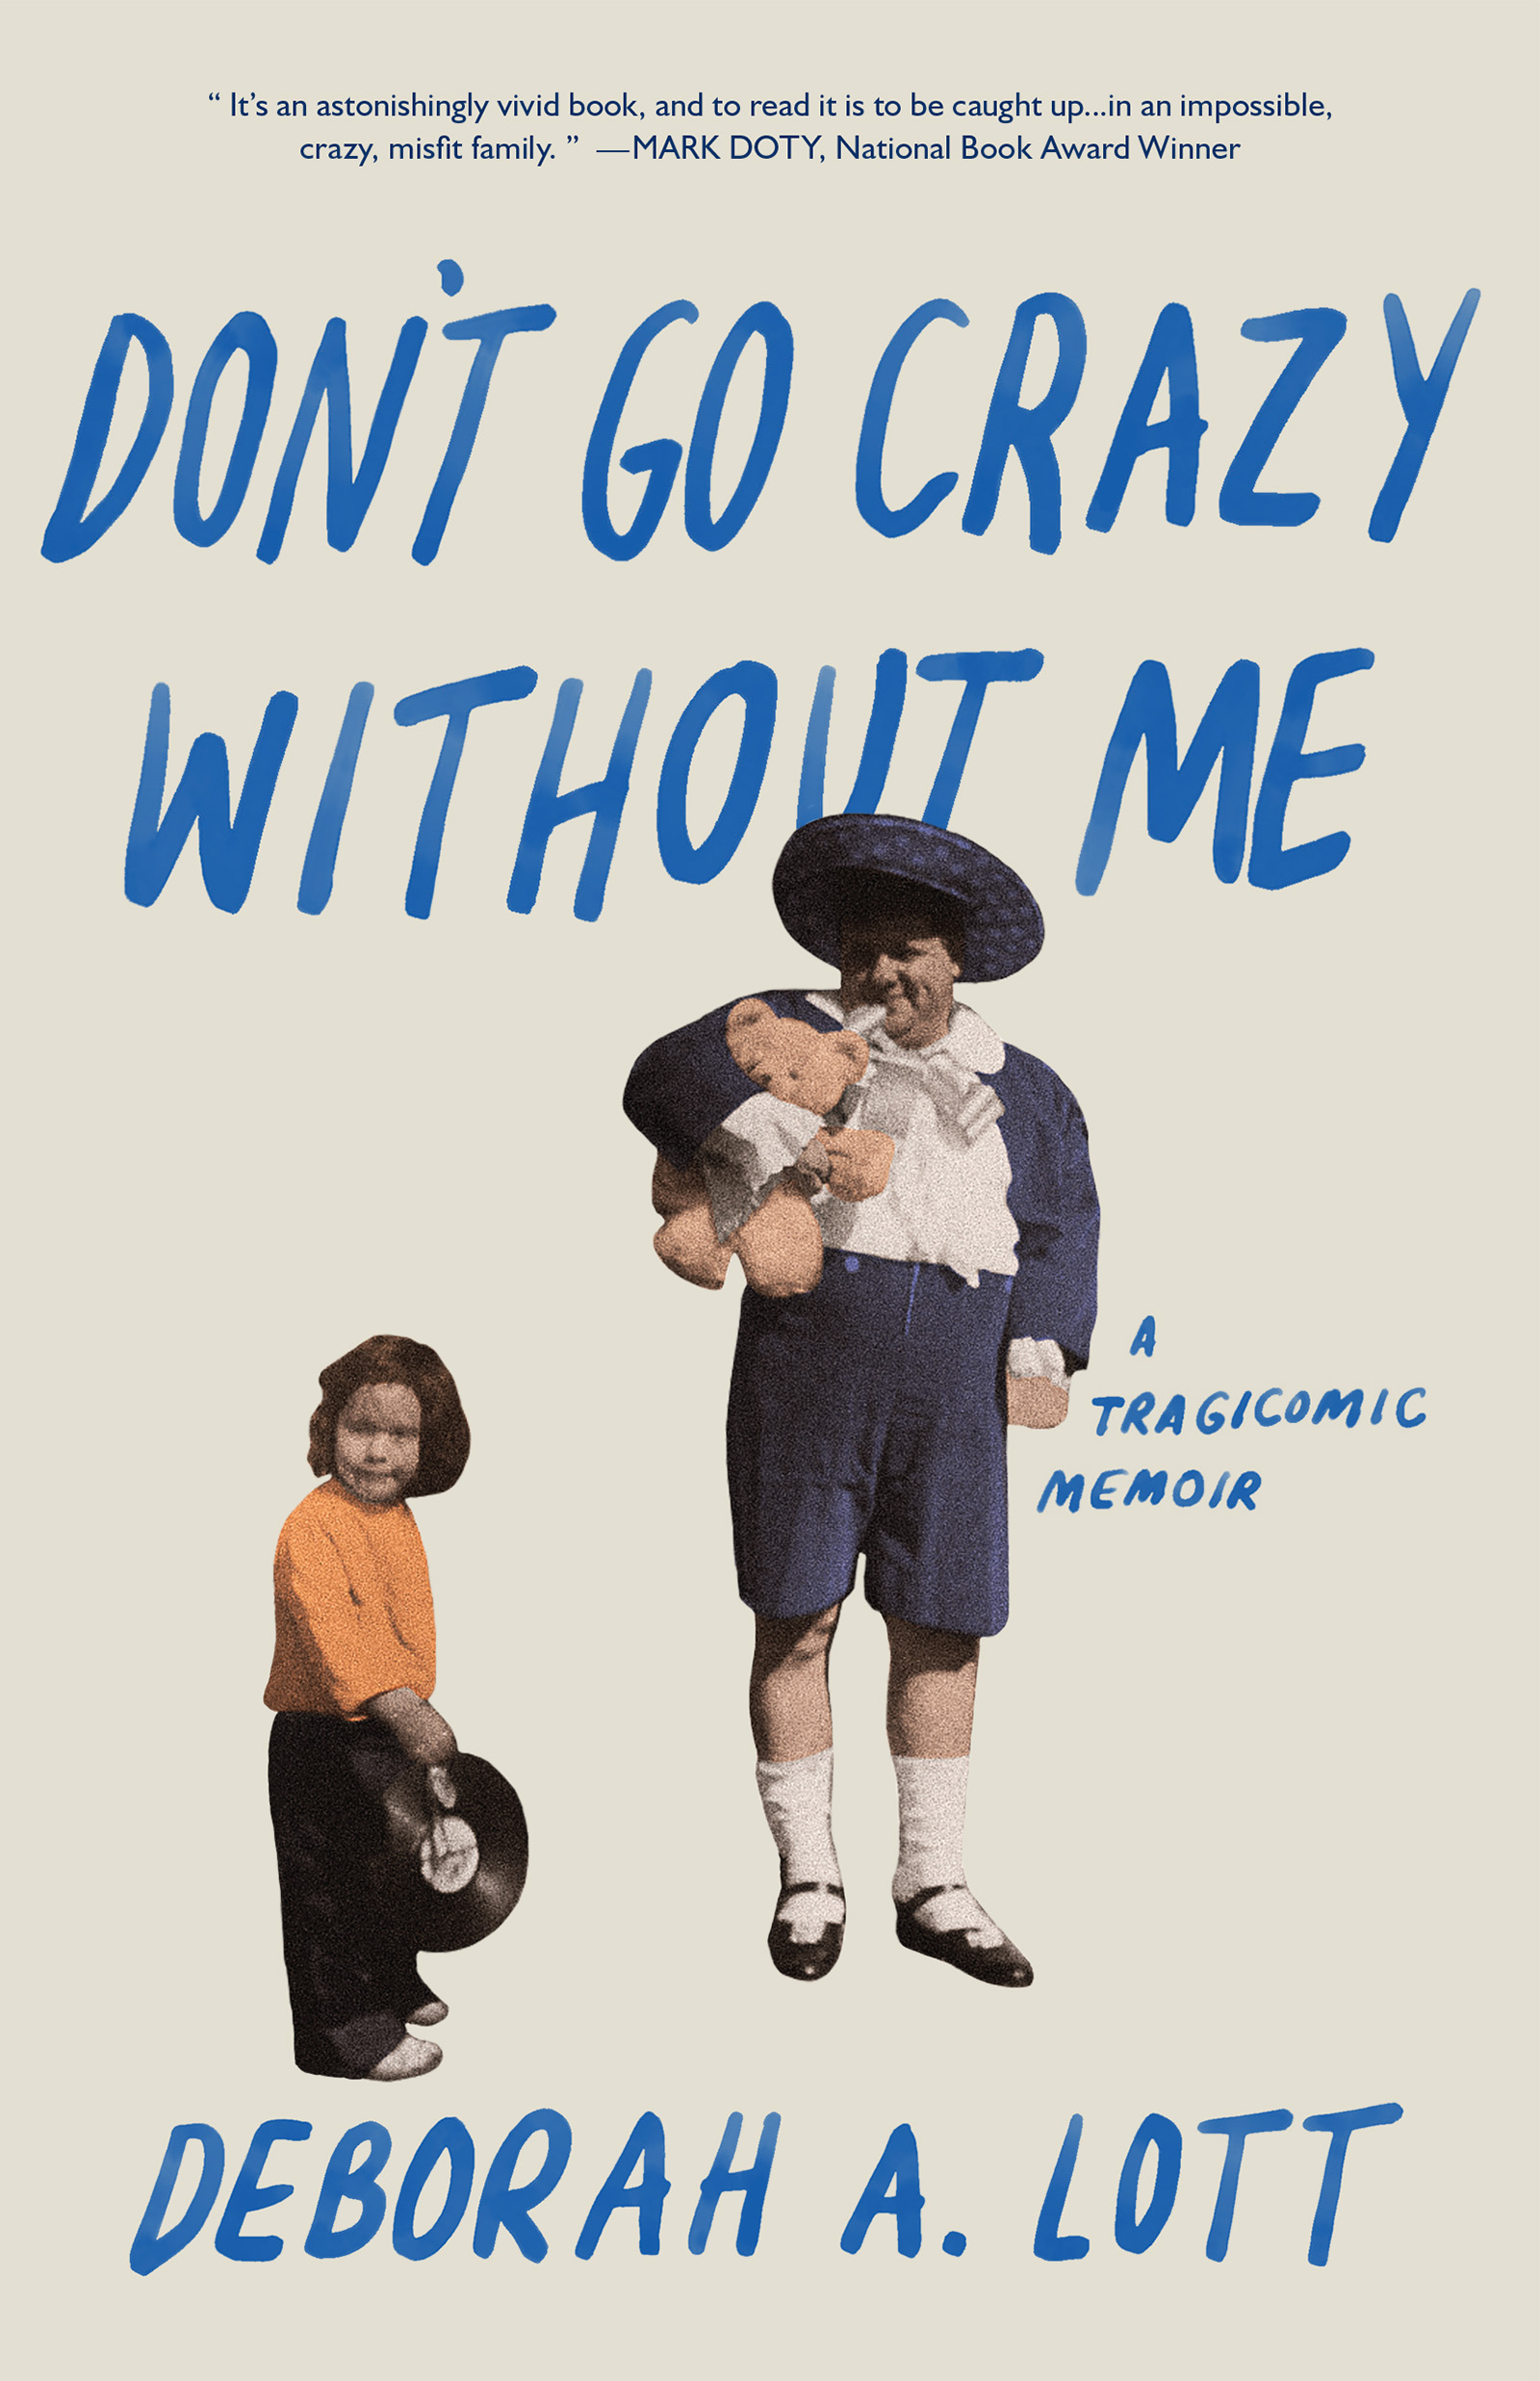 A cut out of an older man holding a teddy bear dressed in blue with a blue large hat on and a kid standing next to him holding a record, and blue script that reads Don't Go Crazy Without Me a tragicomic memoir by Deborah A. Lott.